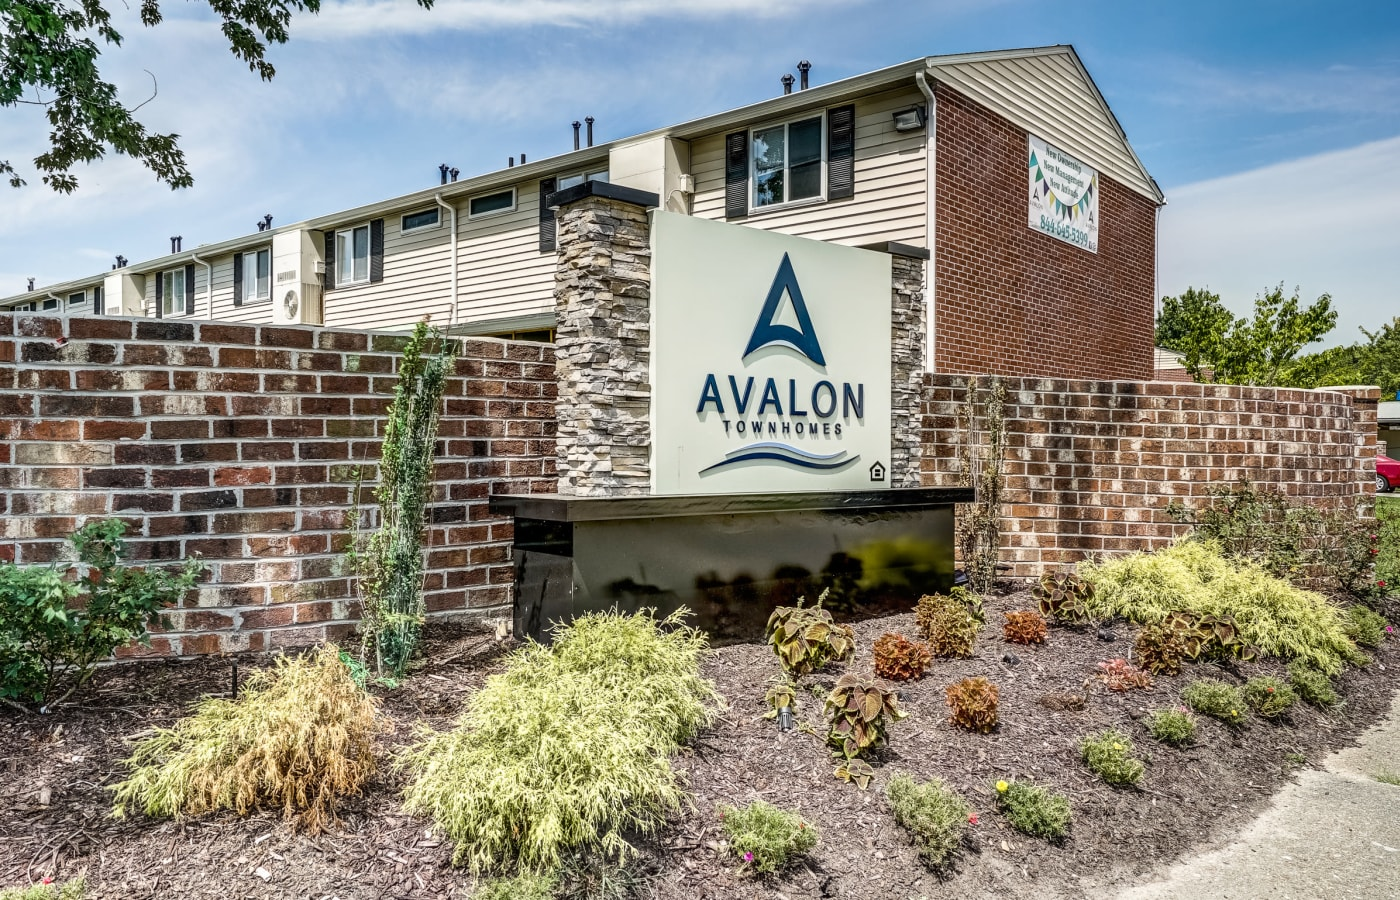 View of Avalon Townhomes' sign and well-manicured landscaping in Hampton, VA